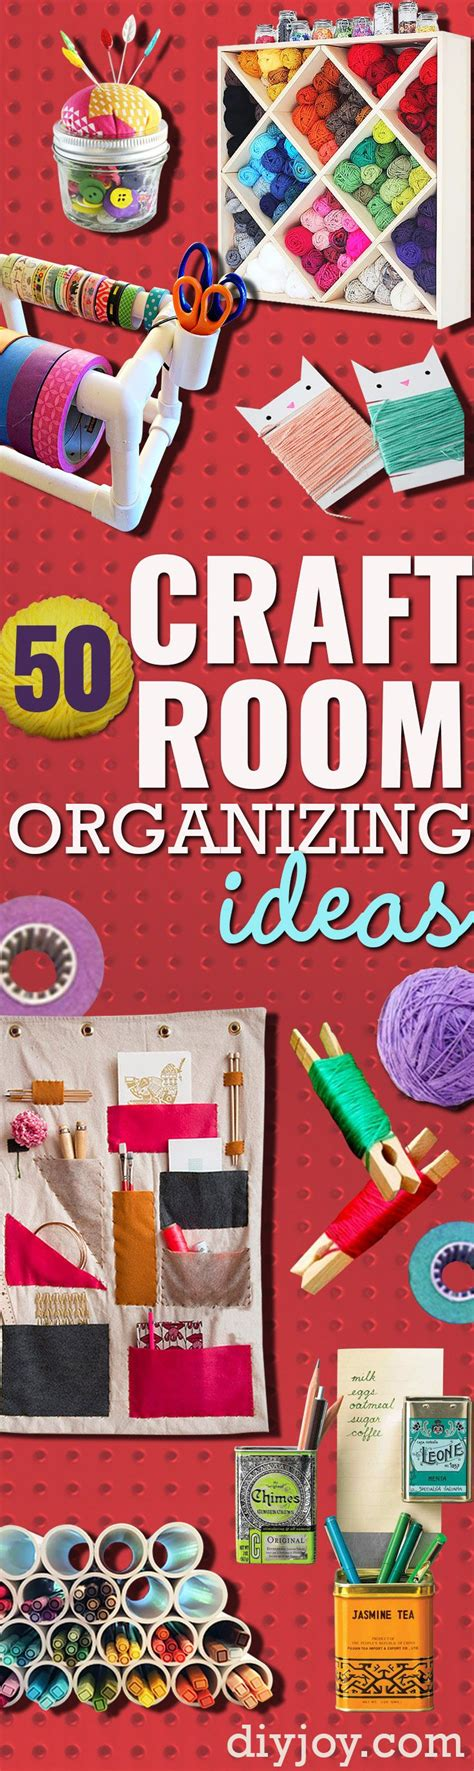 craft room ideas 1494 best images about sewing room decorating ideas on